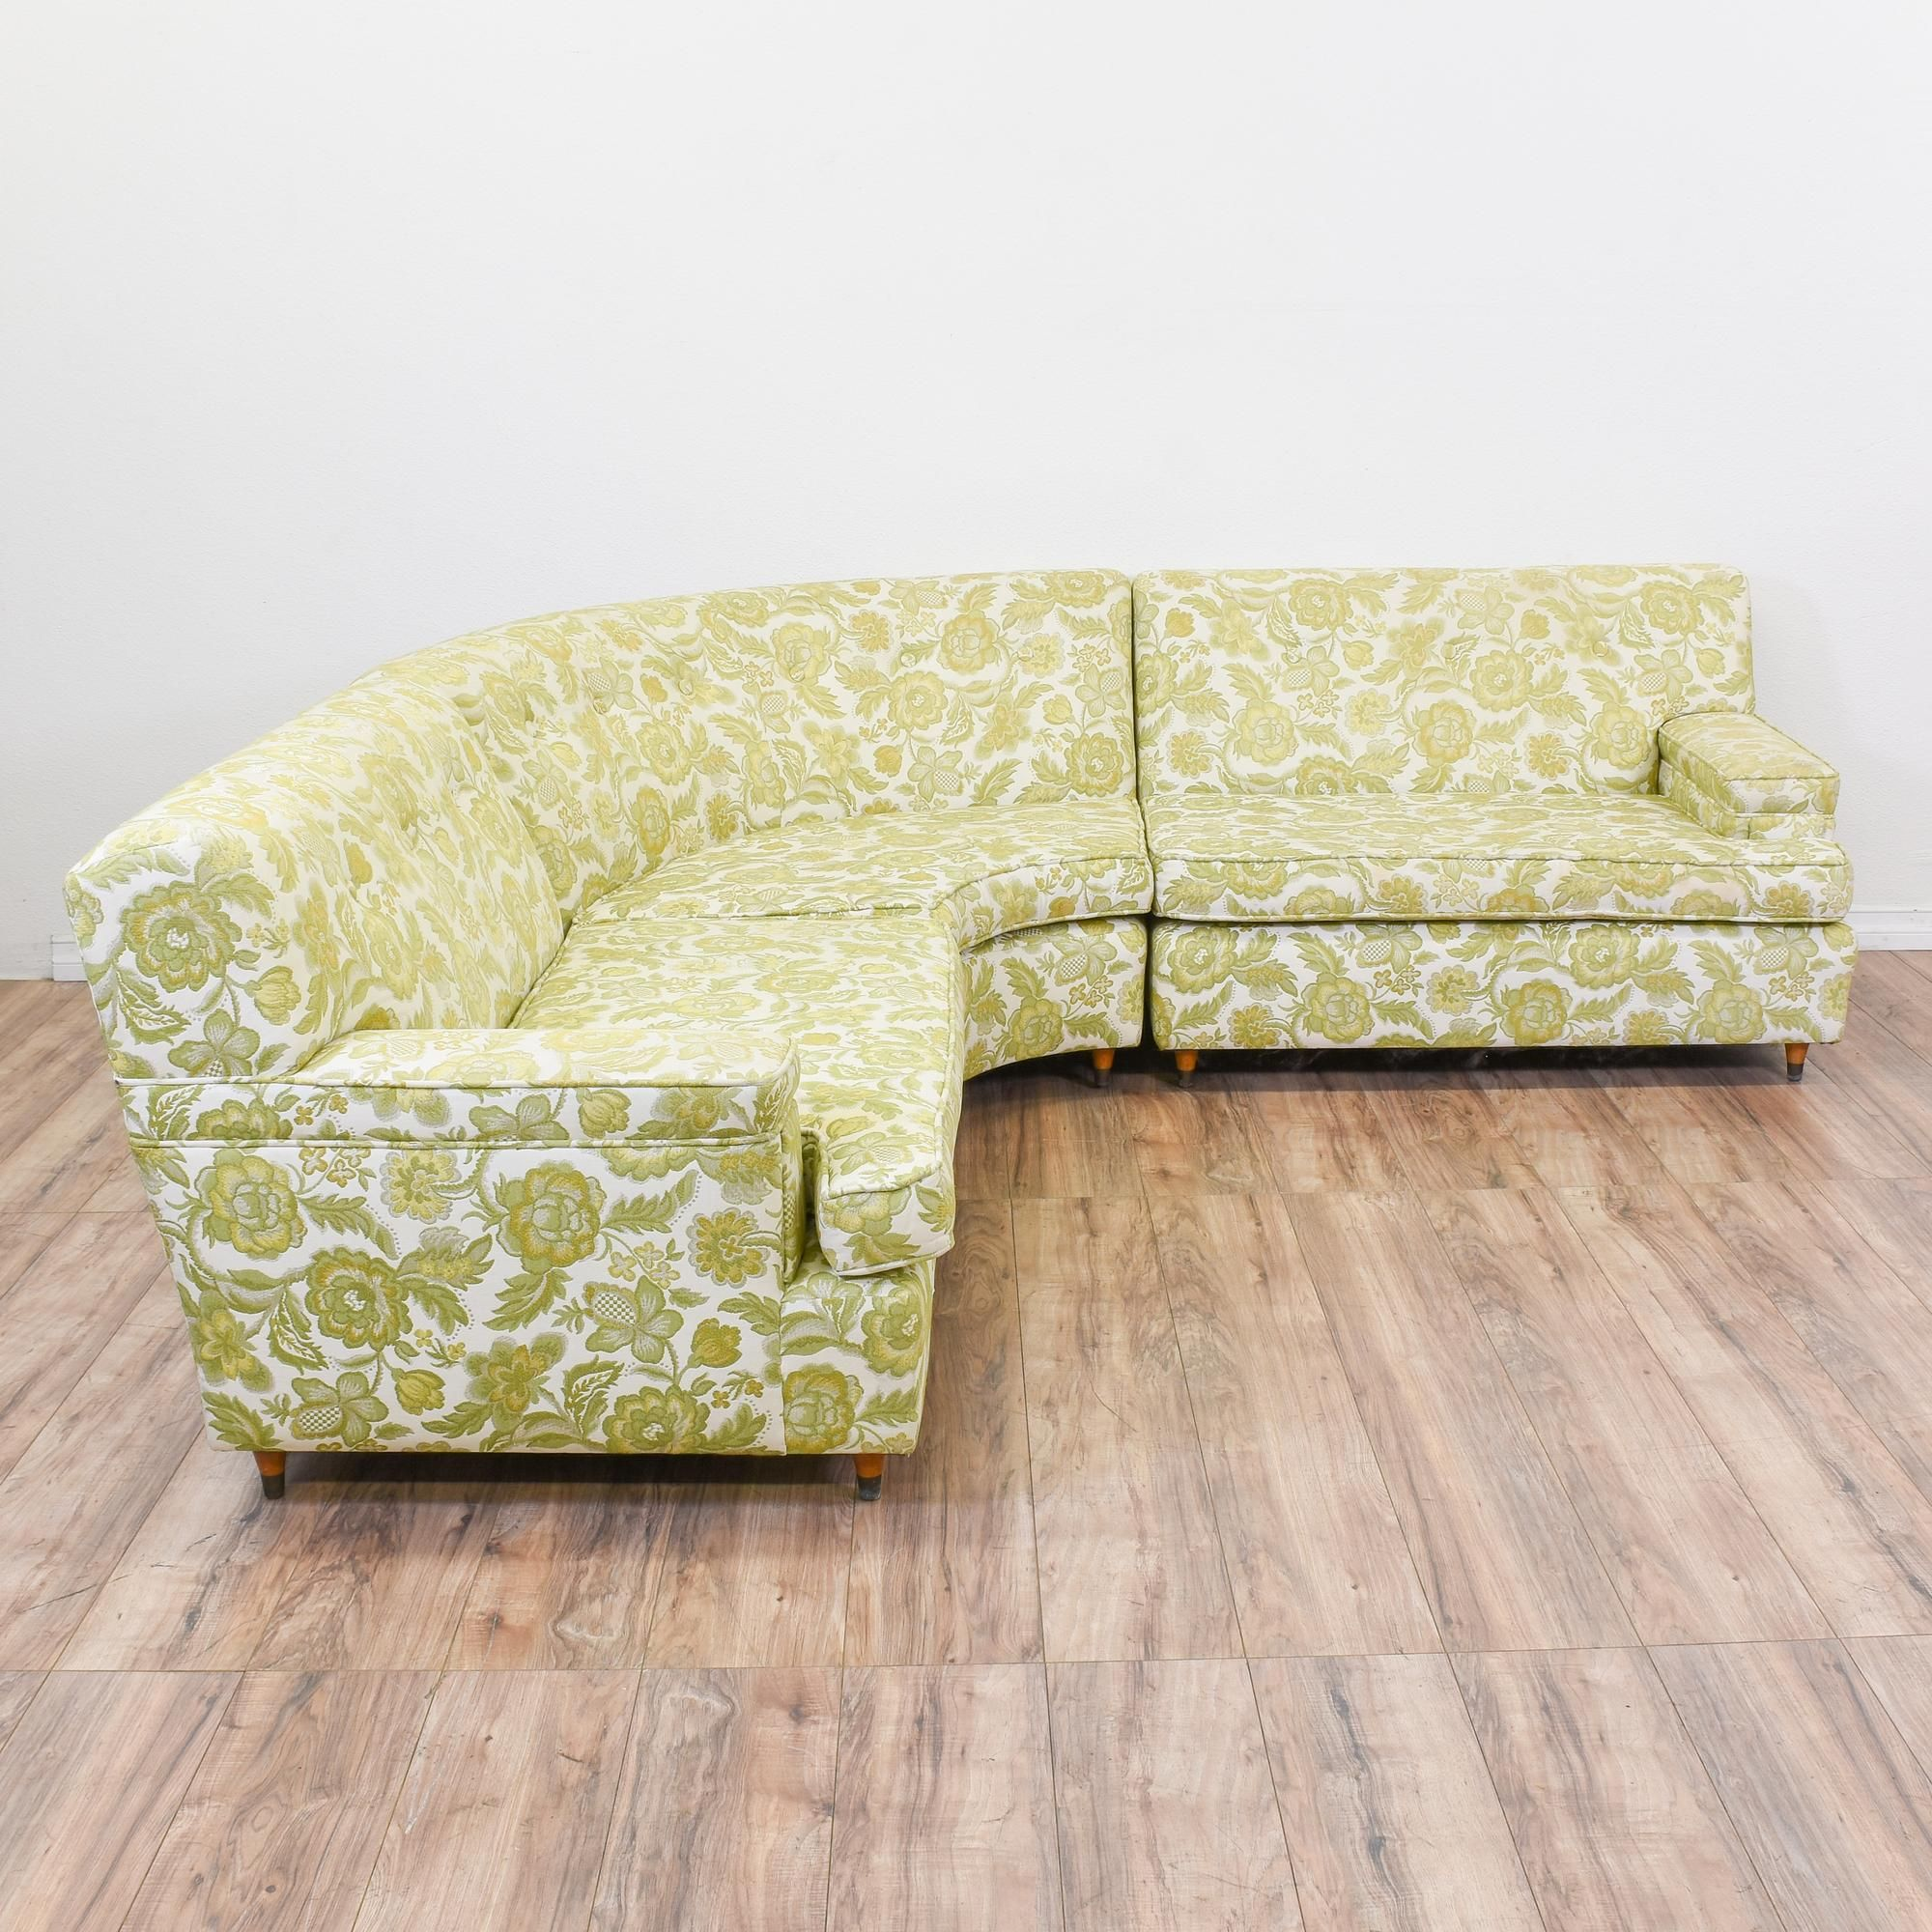 Great This Floral Sectional Sofa Is Upholstered In A Yellow And Green Floral  Pattern. This Couch Is In Great Condition With Three Rearrangeable Seats,  ...